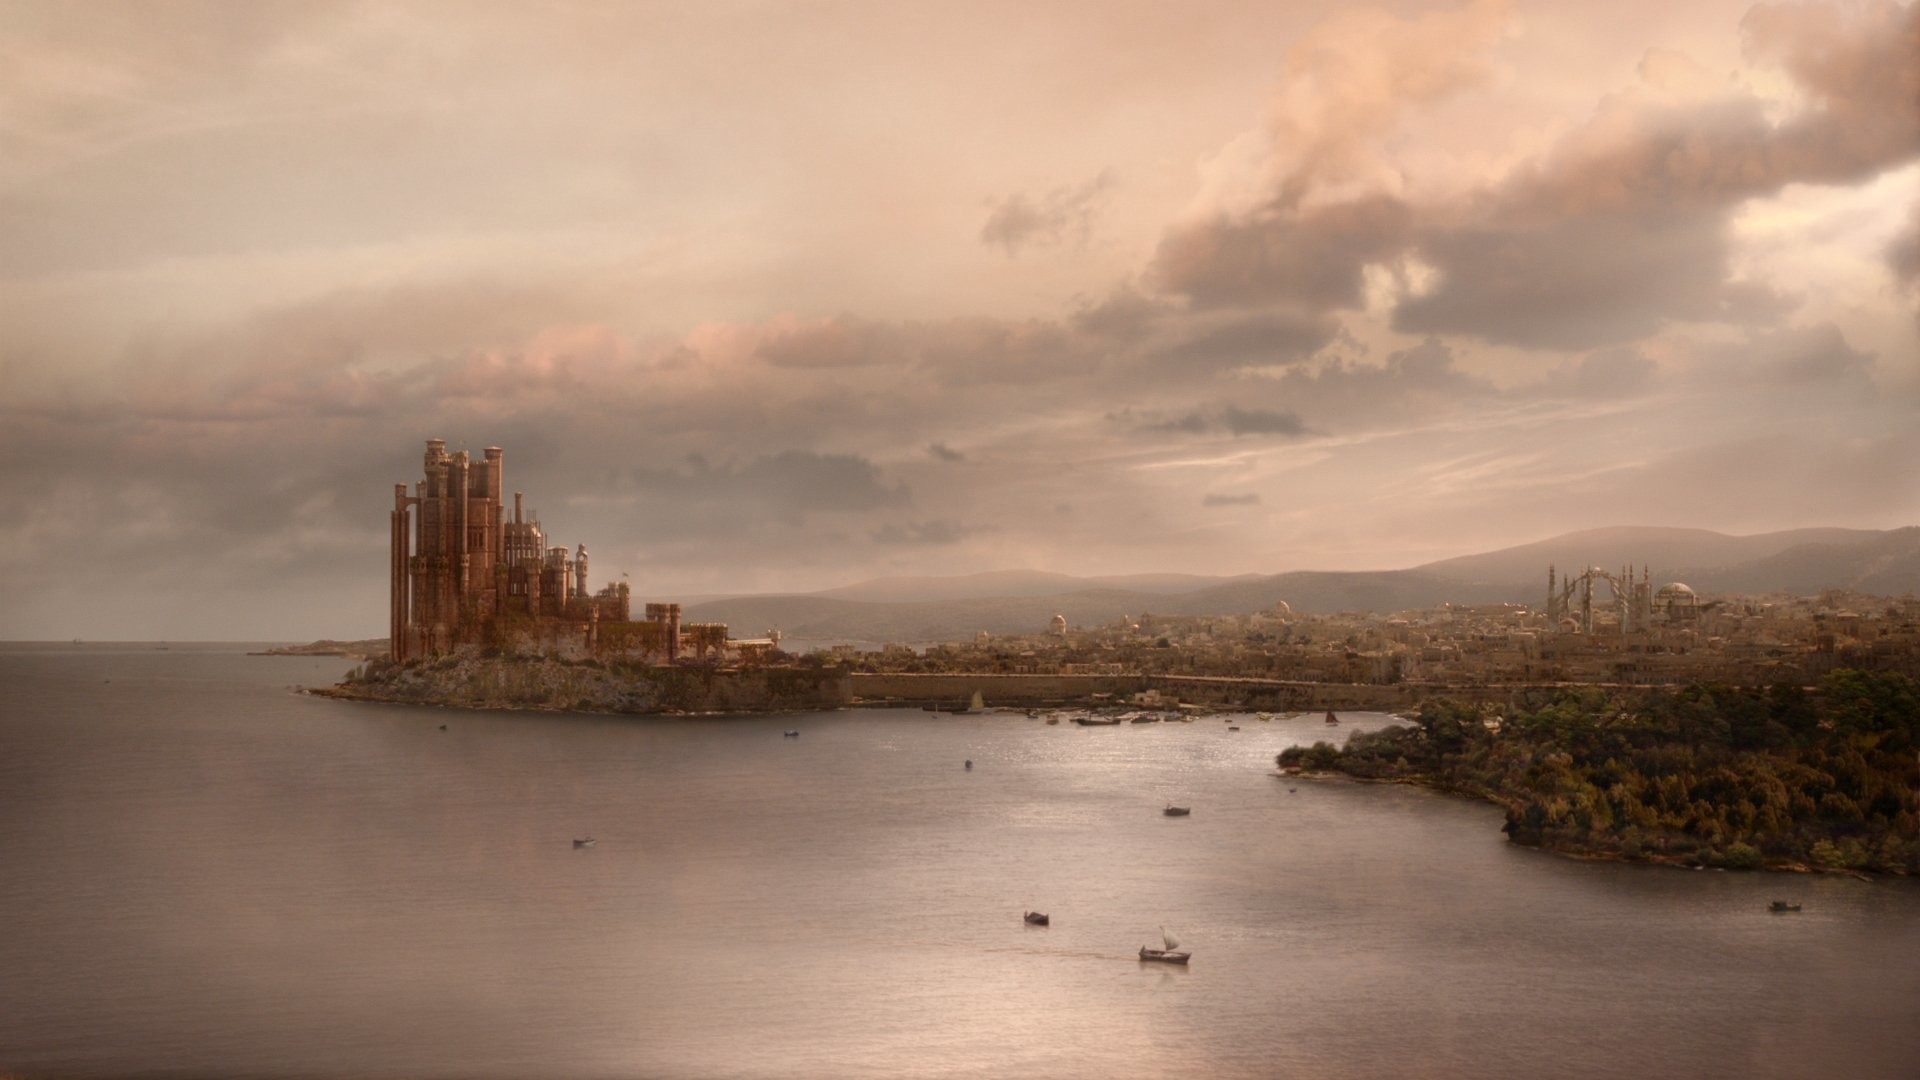 HD Game Of Thrones Wallpapers and Photos, px   By Daisy Delcid